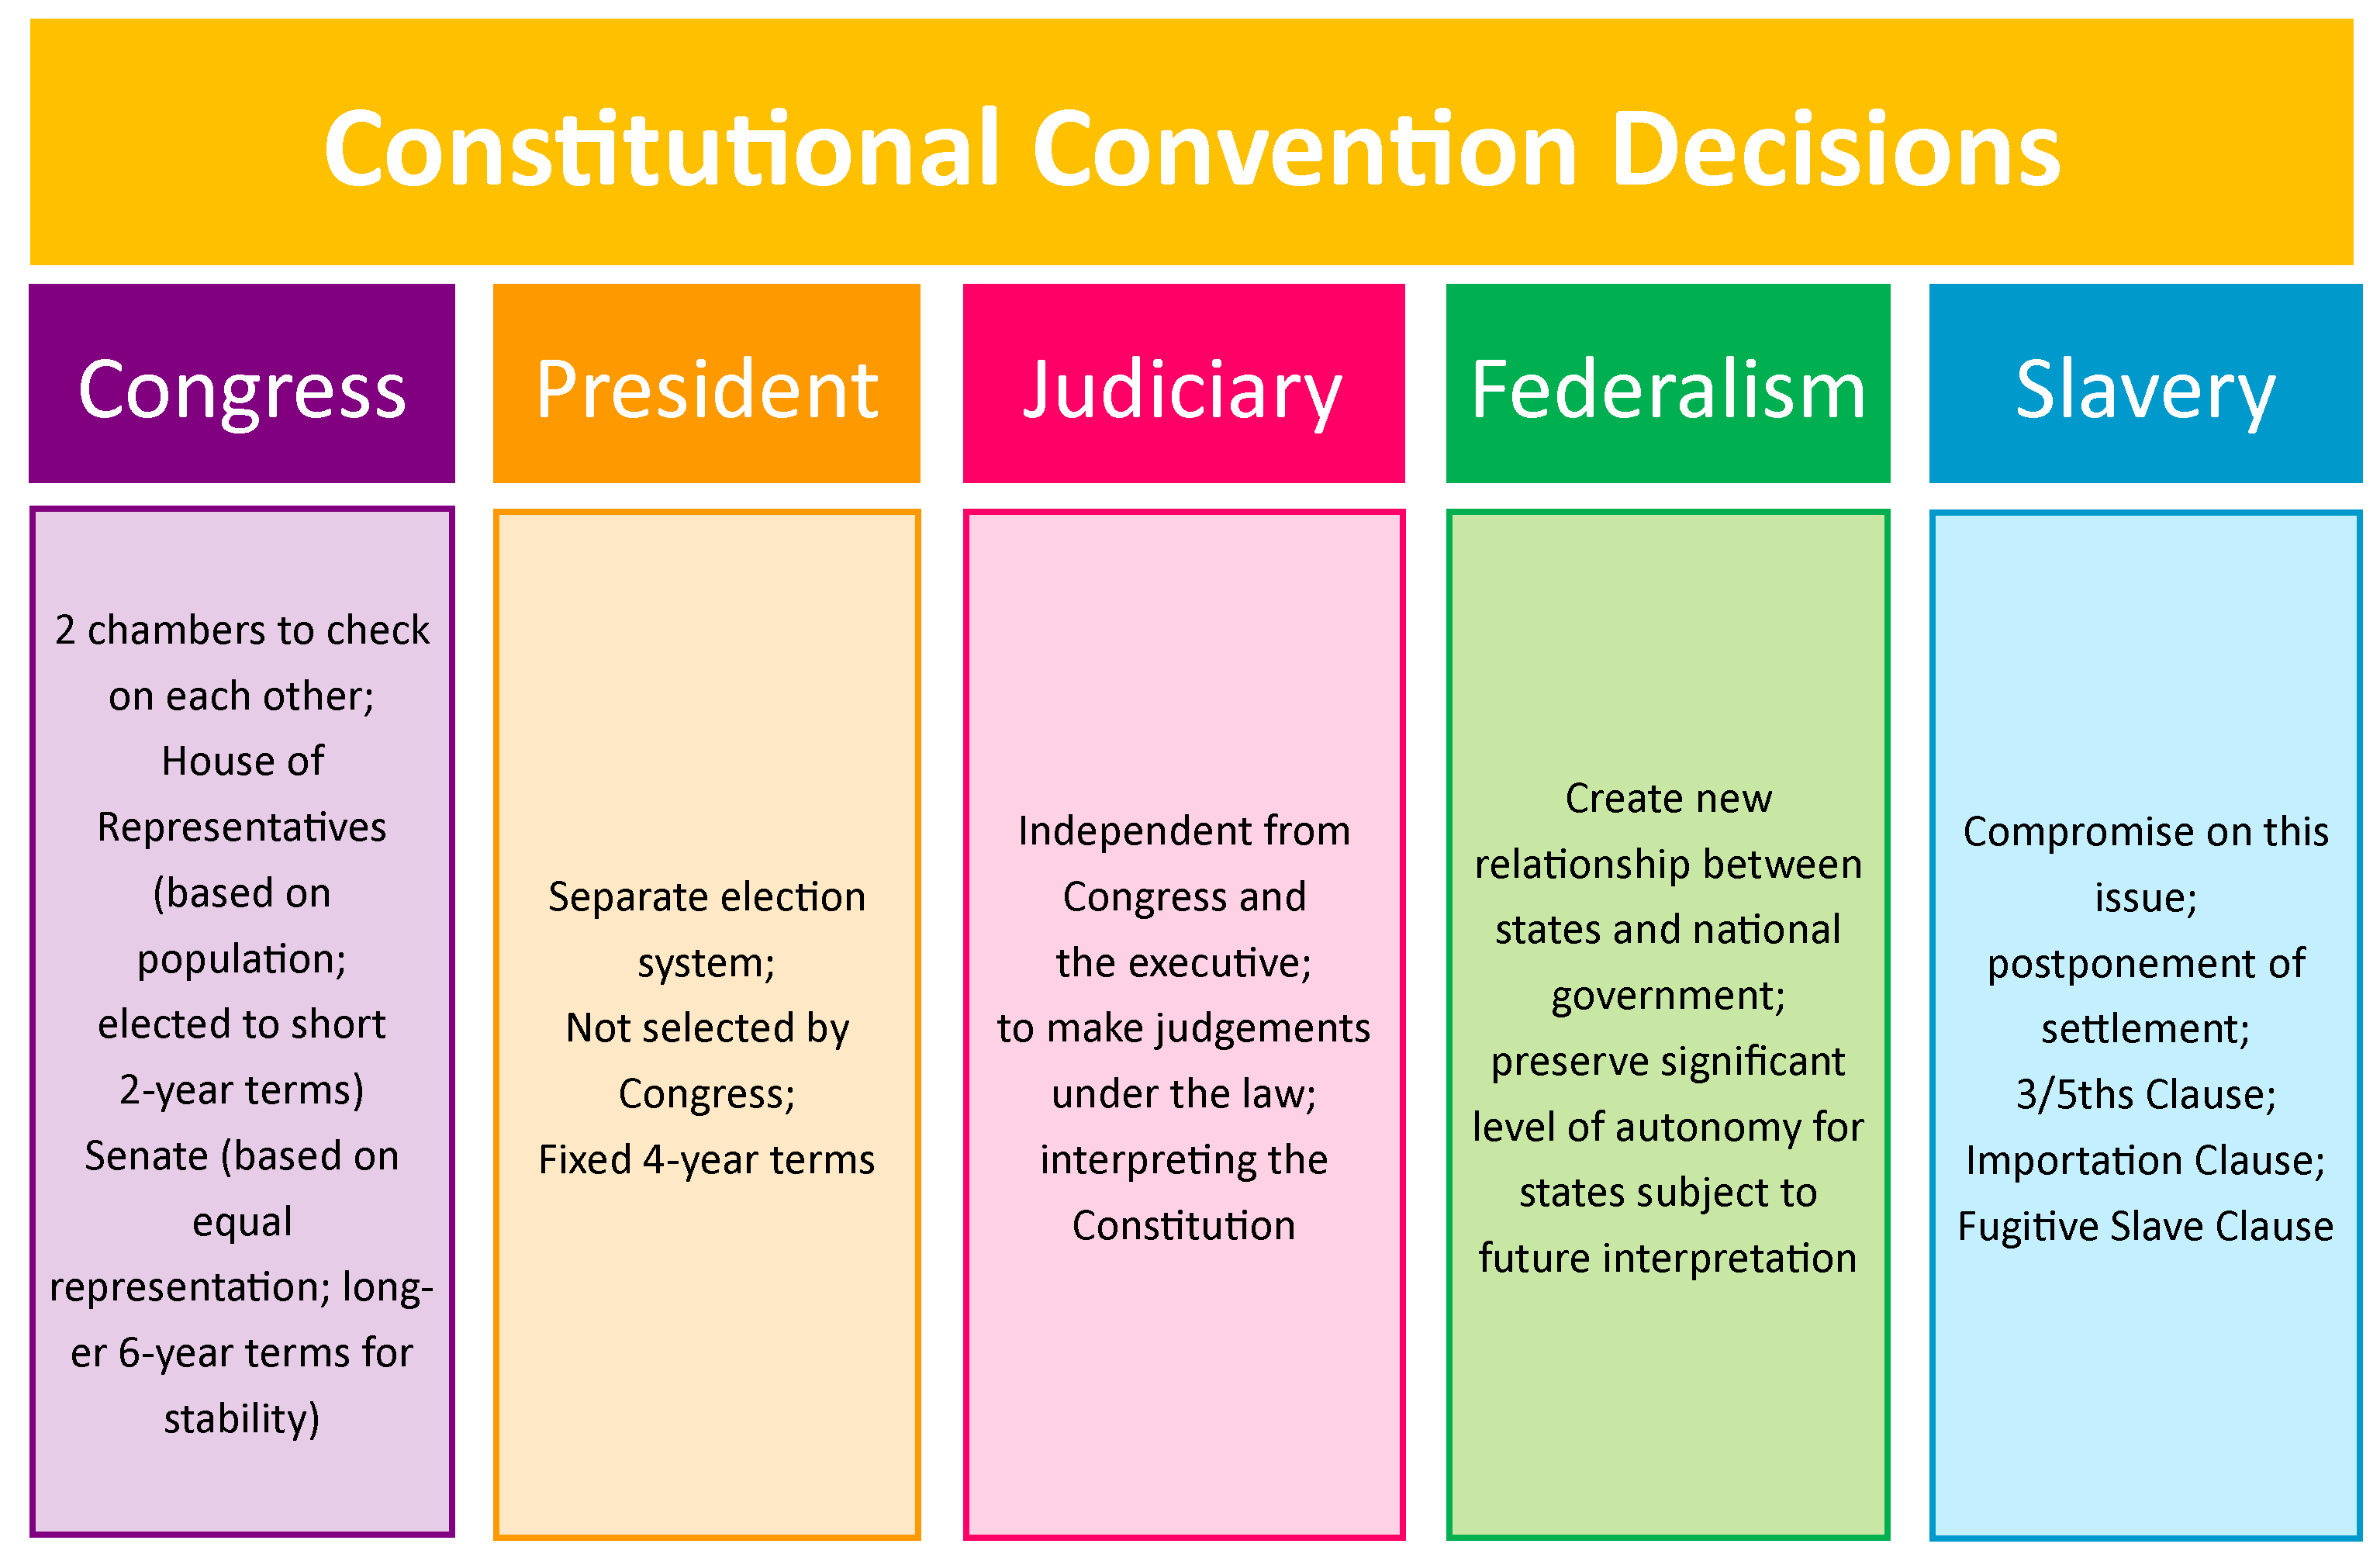 chart of constitutional convention decisions categorized by congress, president, judiciary, federalism and slavery.